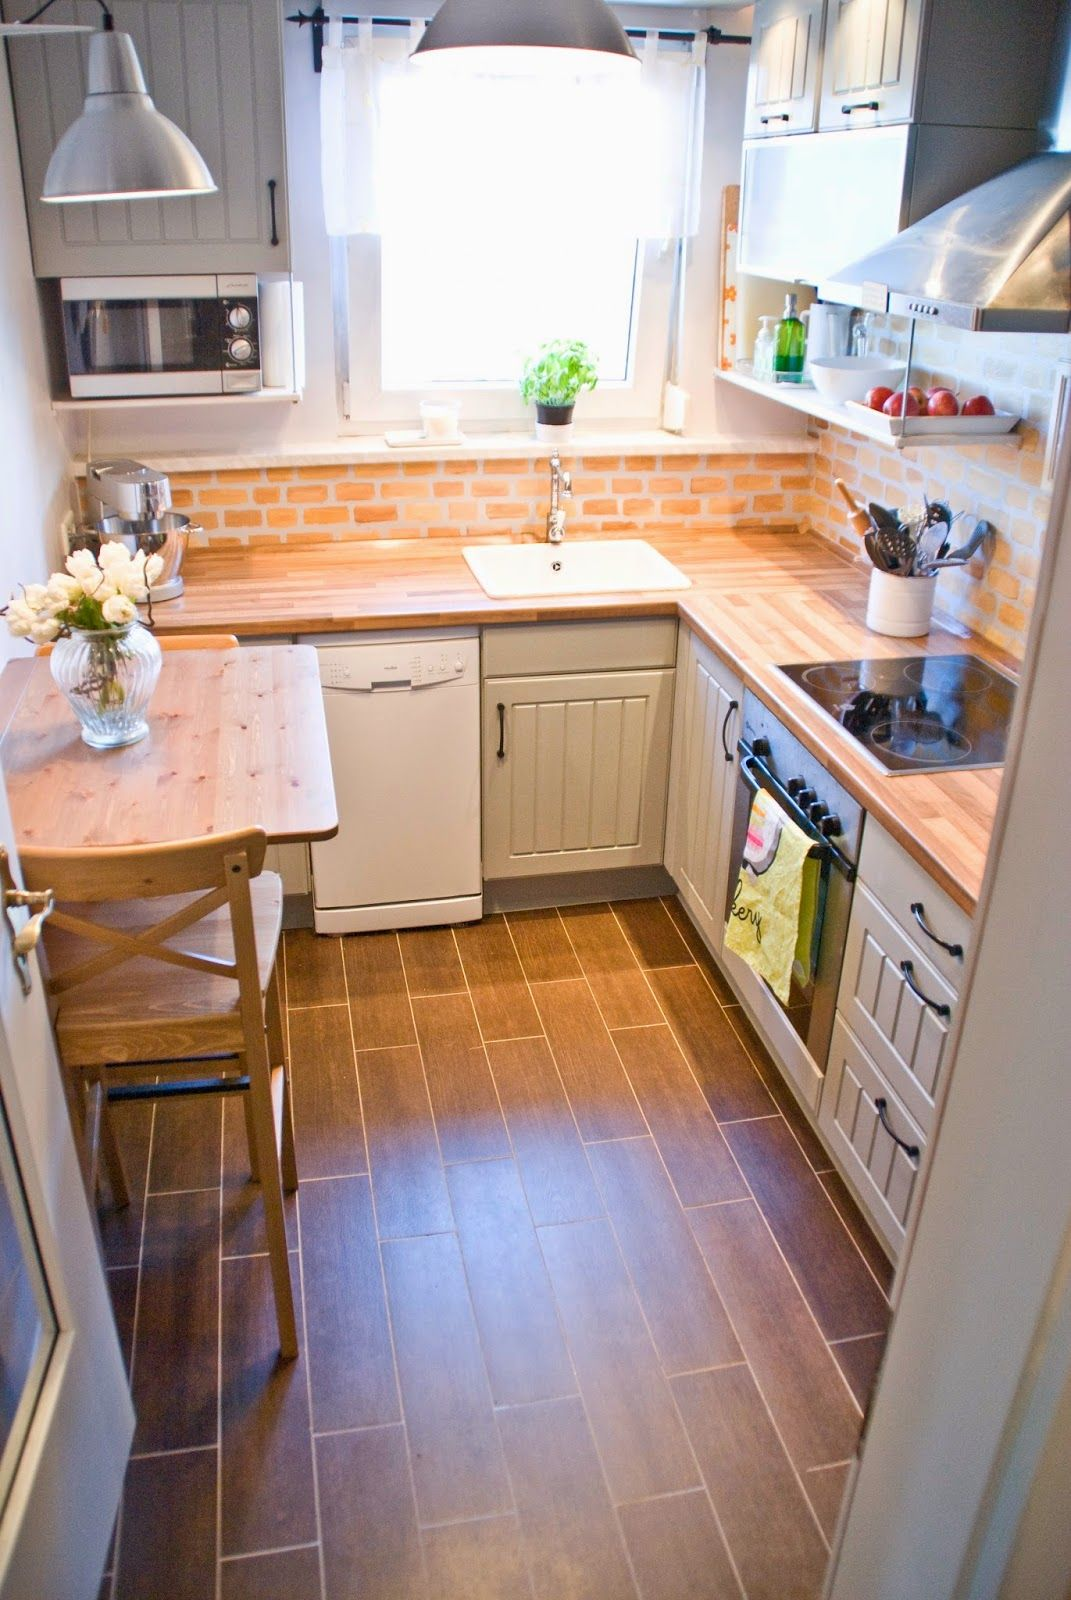 Small Kitchen Ideas Smart Ways Enlarge the Worth Small